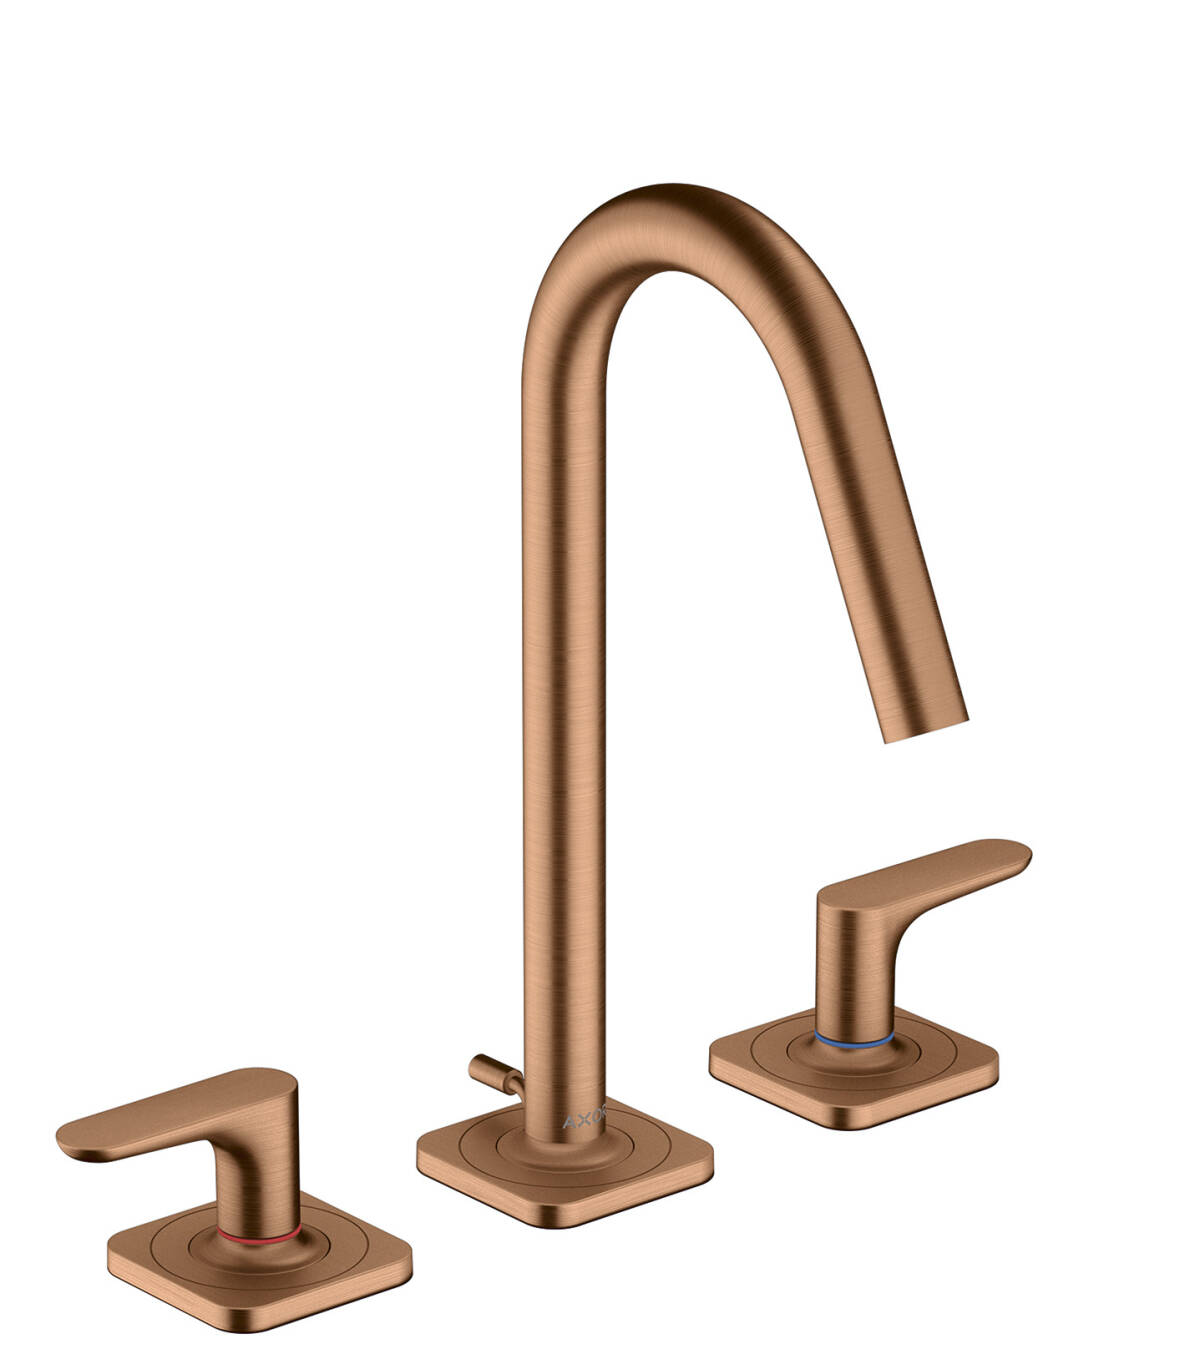 3-hole basin mixer 160 with pop-up waste set, lever handles and escutcheons, Brushed Bronze, 34133140